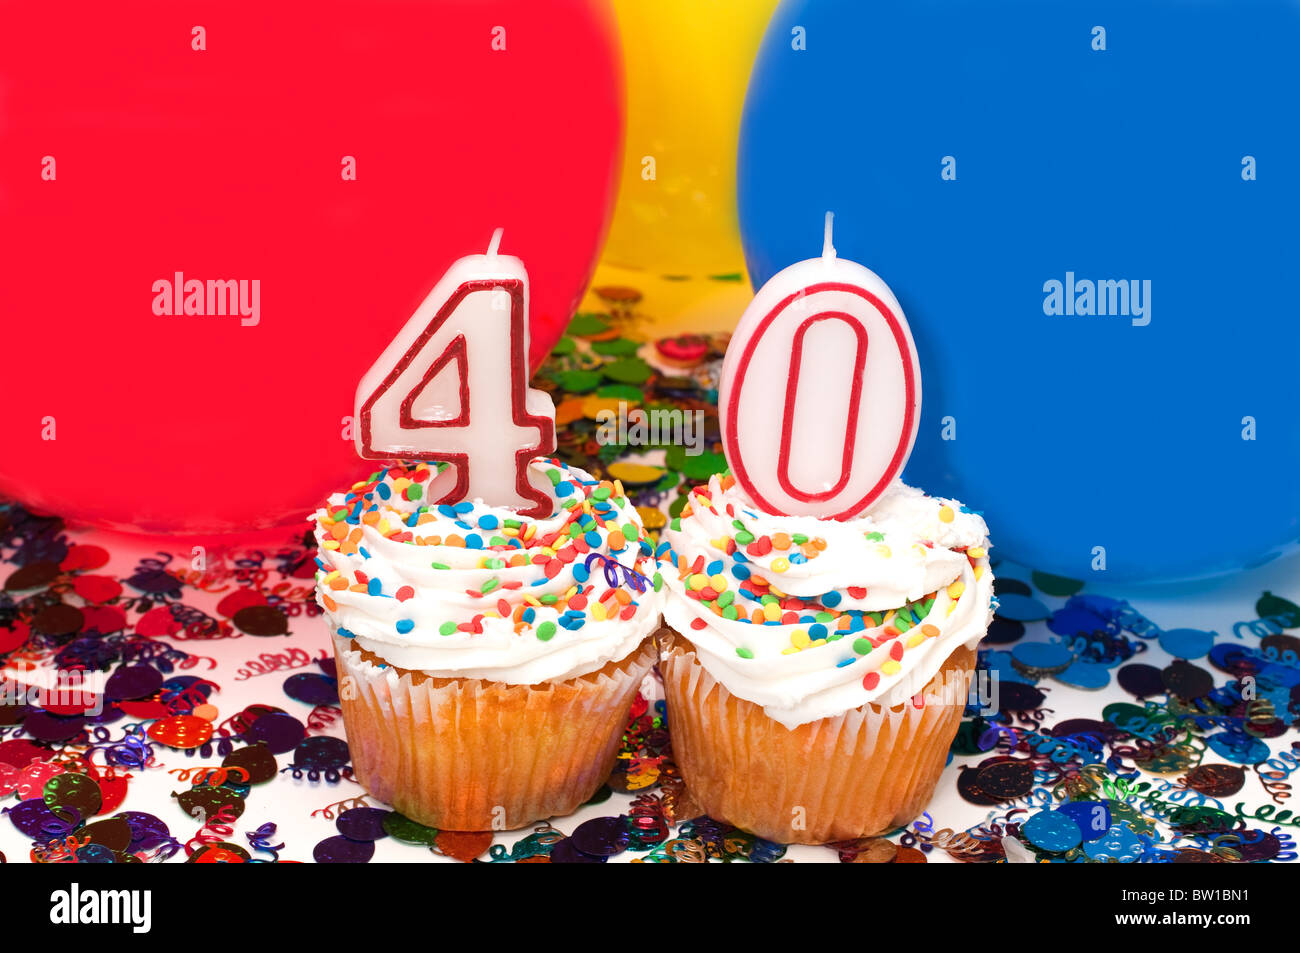 Celebration with balloons, confetti, cupcake, and number 40 candle. - Stock Image